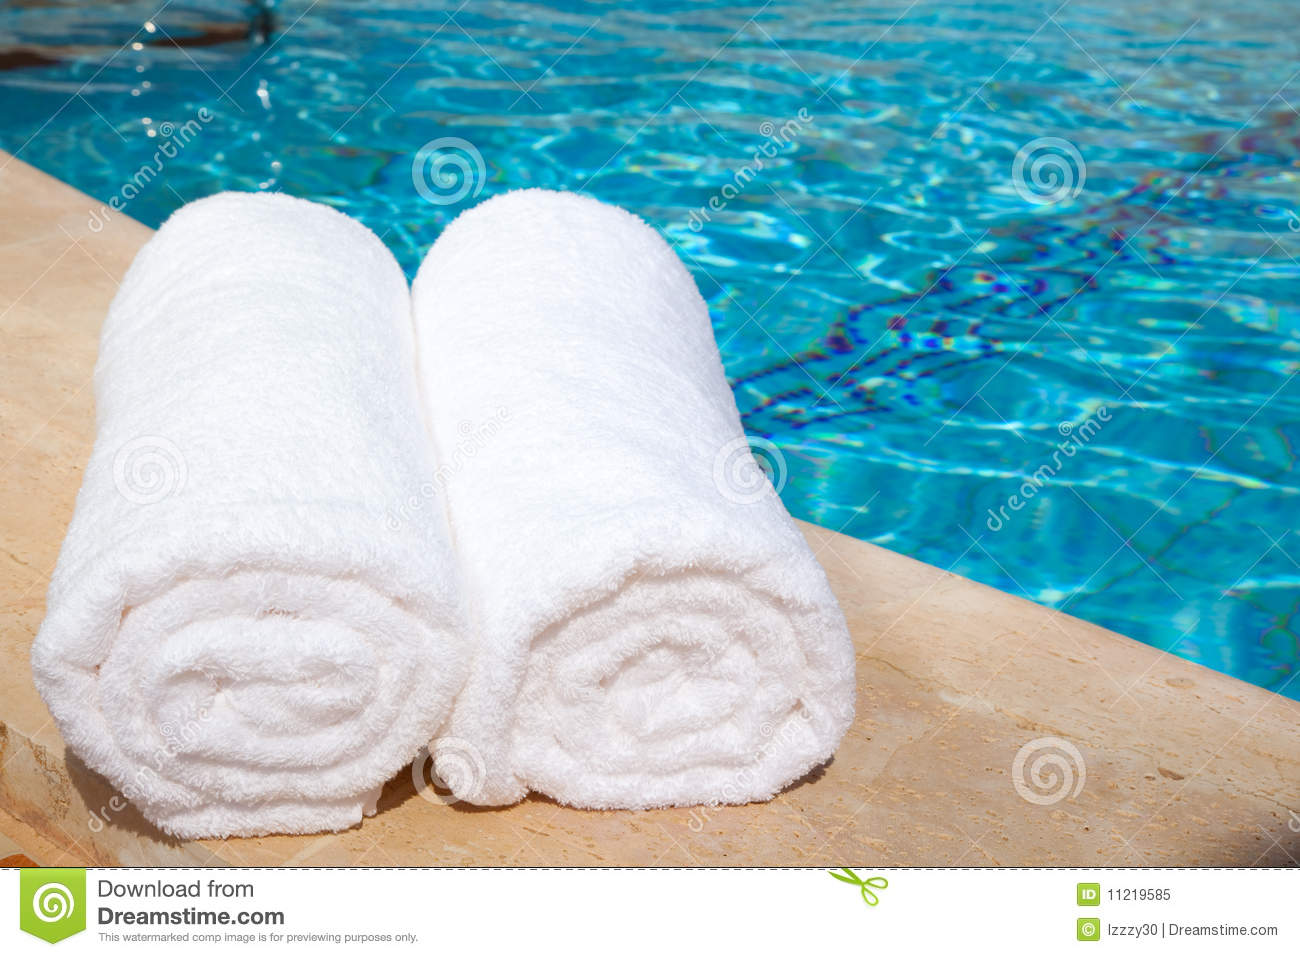 Two rolled up white towels by blue pool stock image for How to get towels white